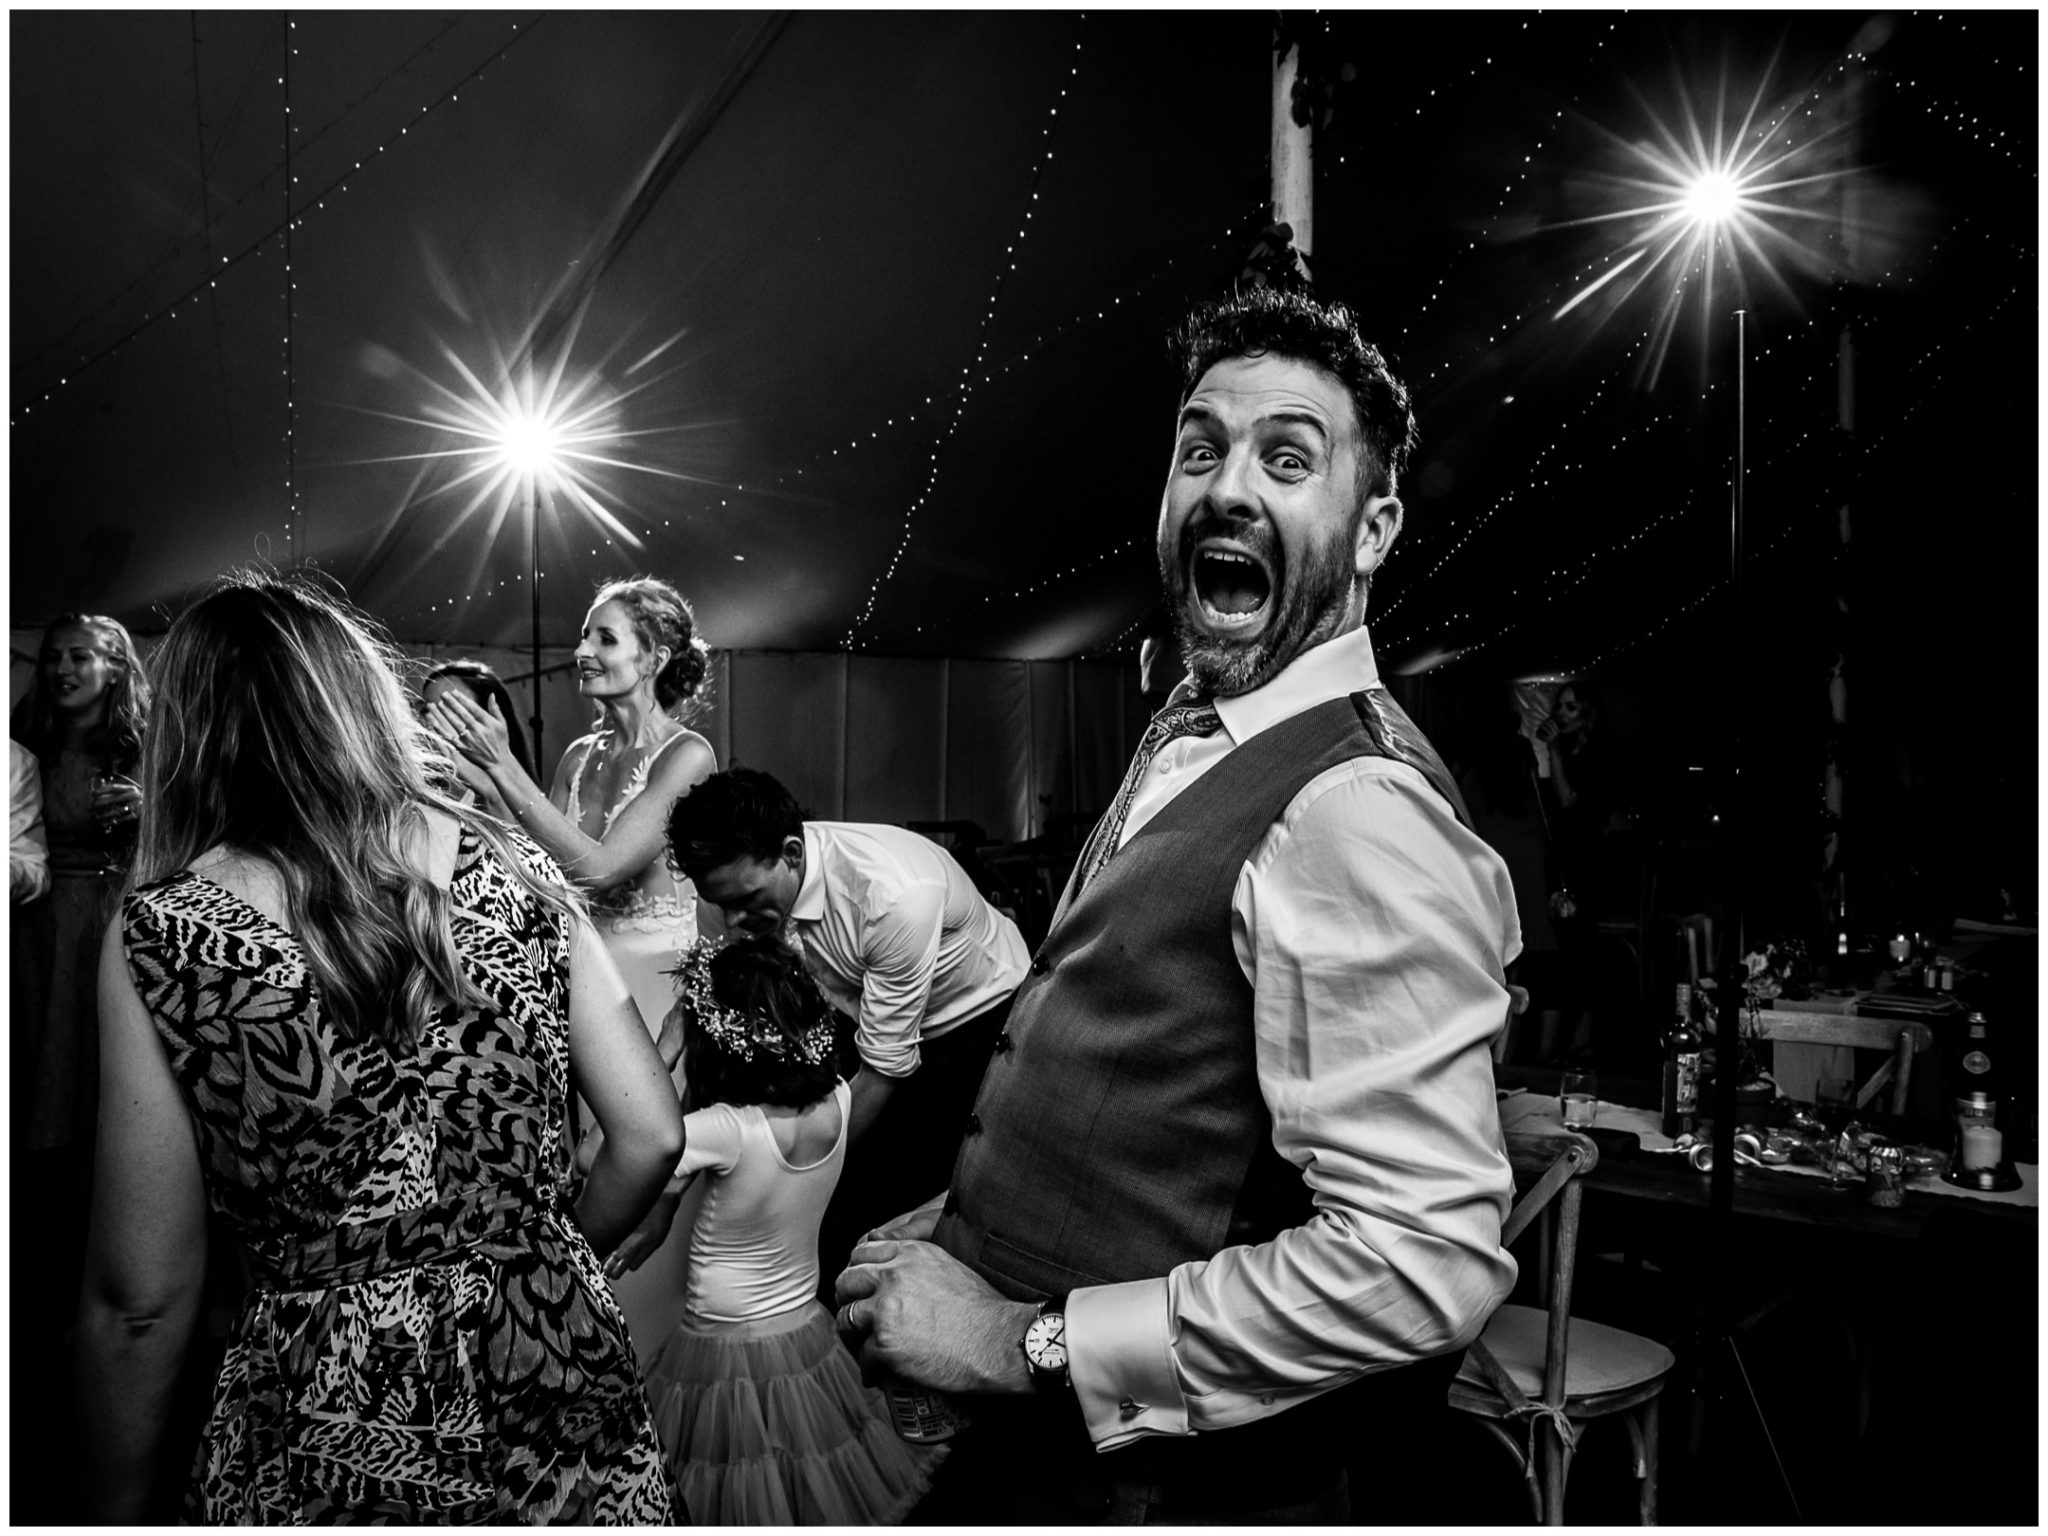 The groom busts out some moves